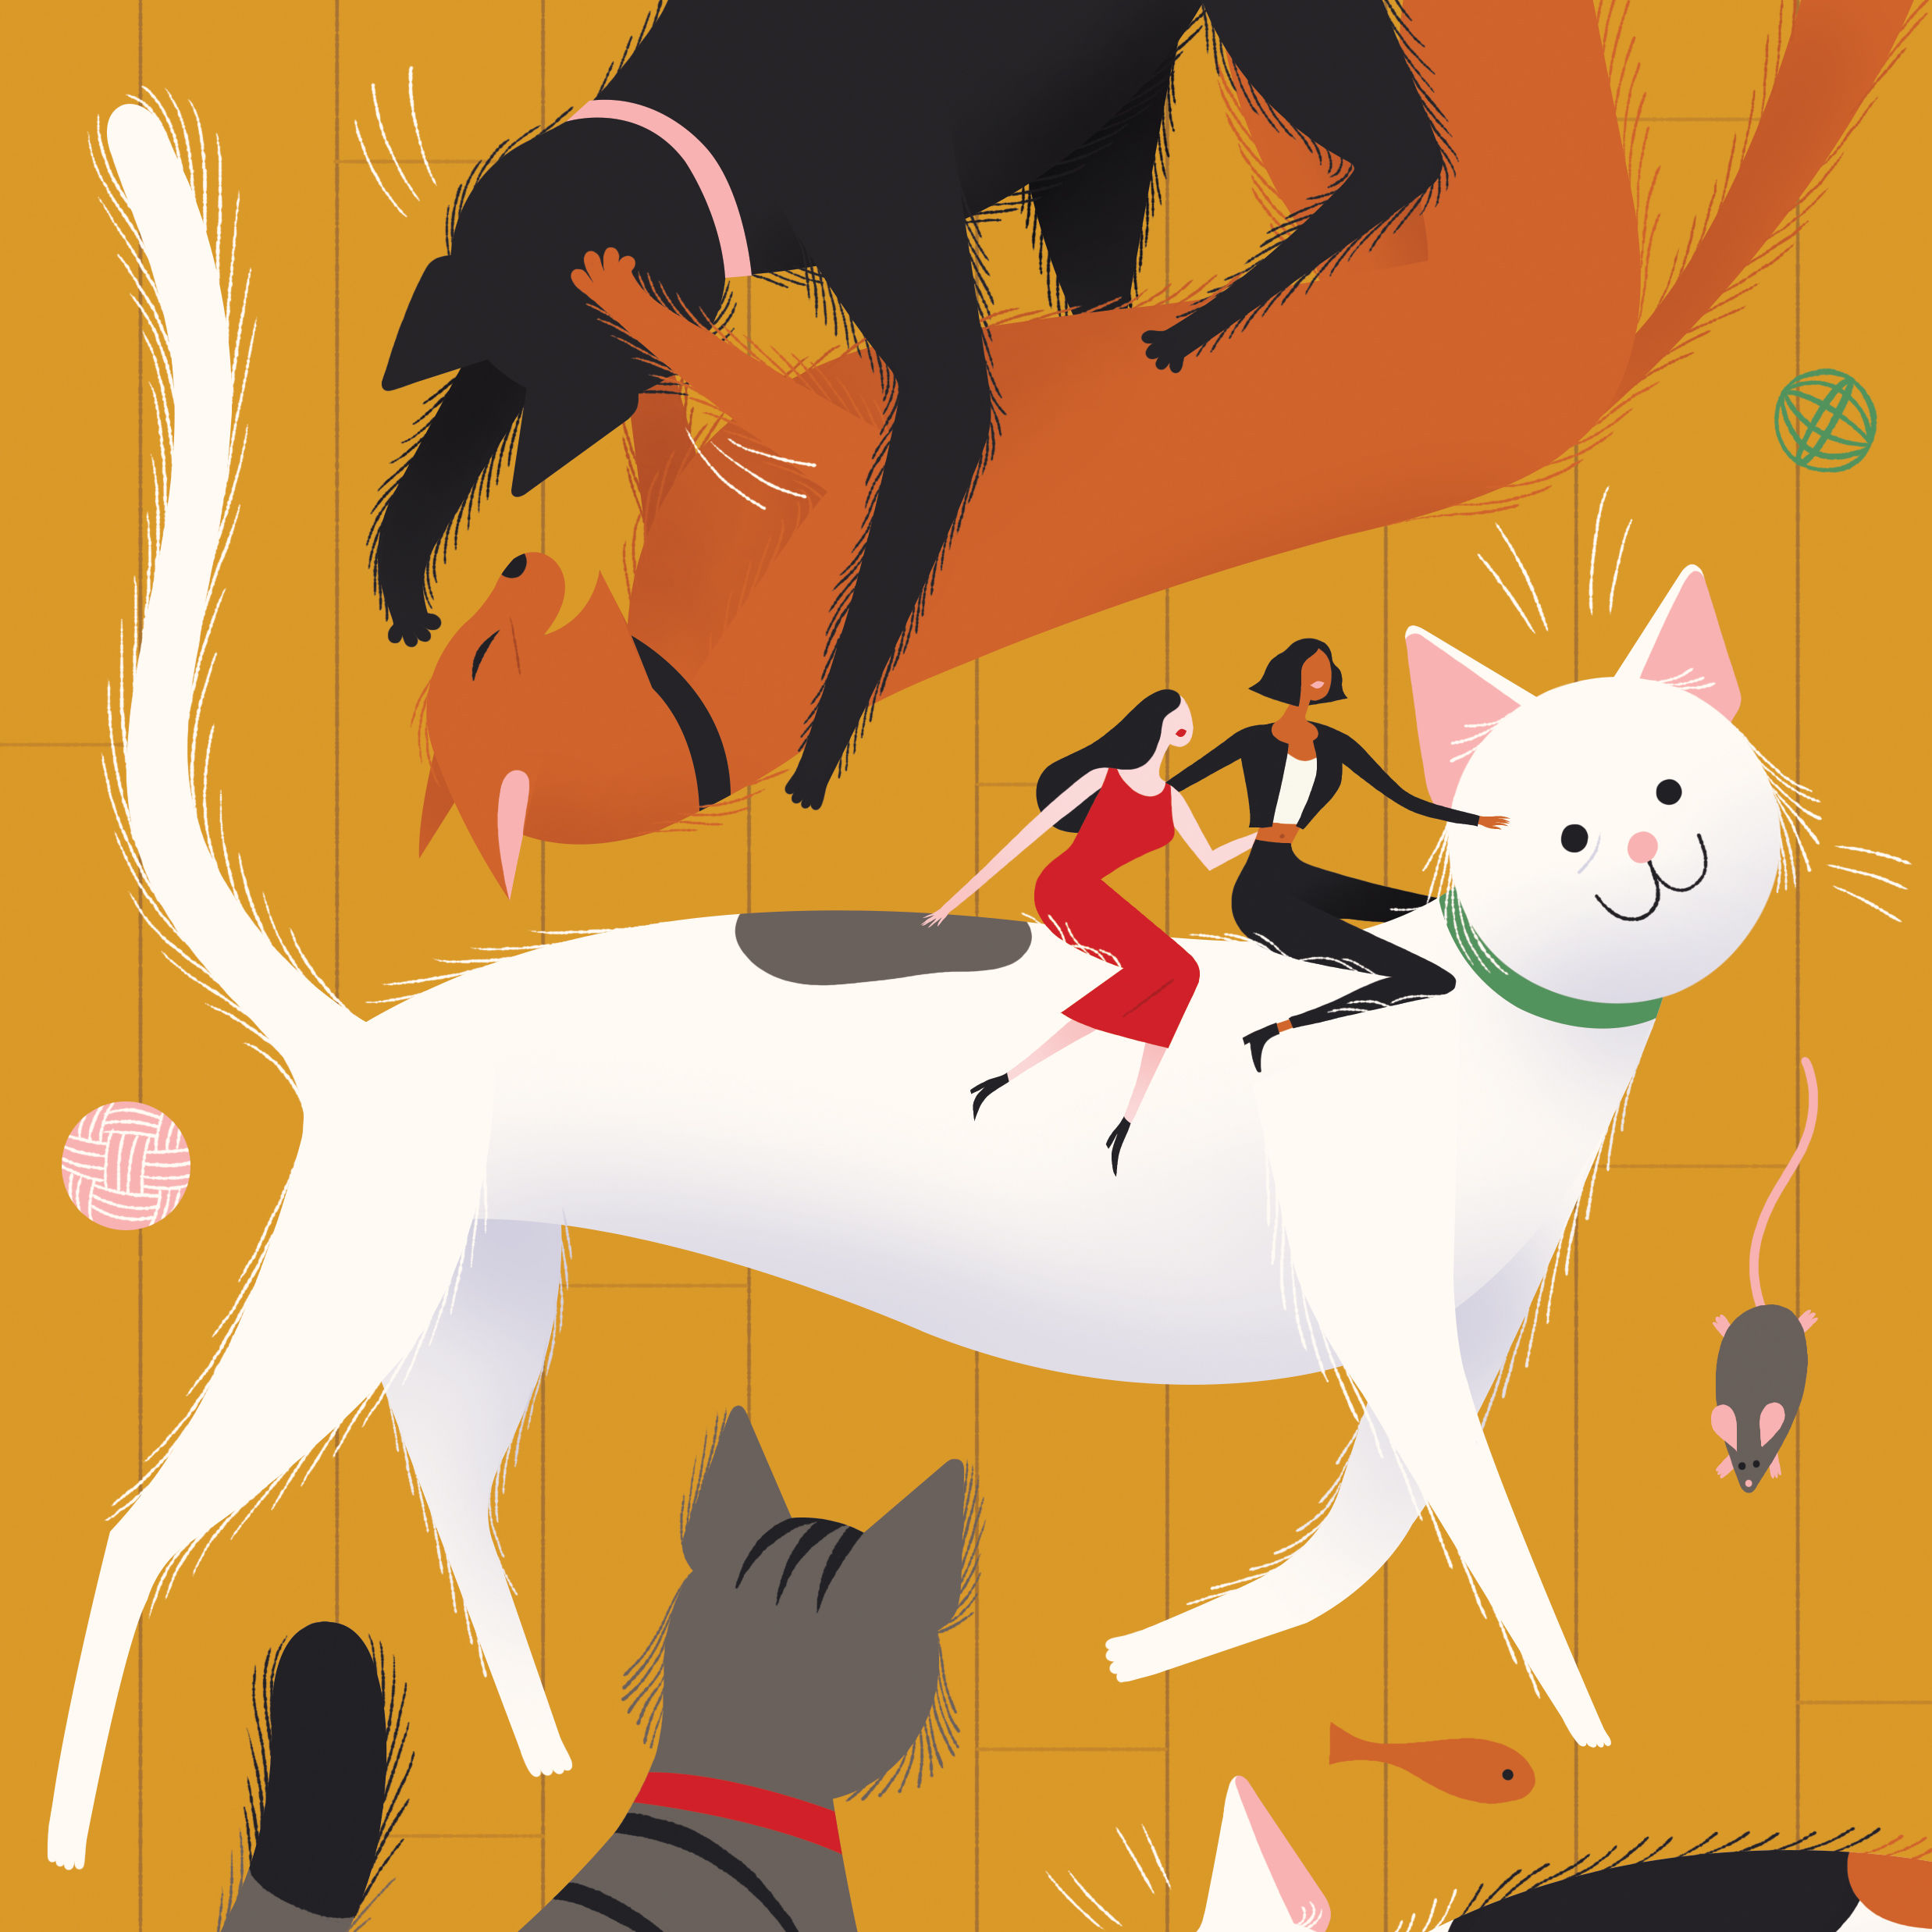 Pomo 0217 pets opener cat illustration xxuriw